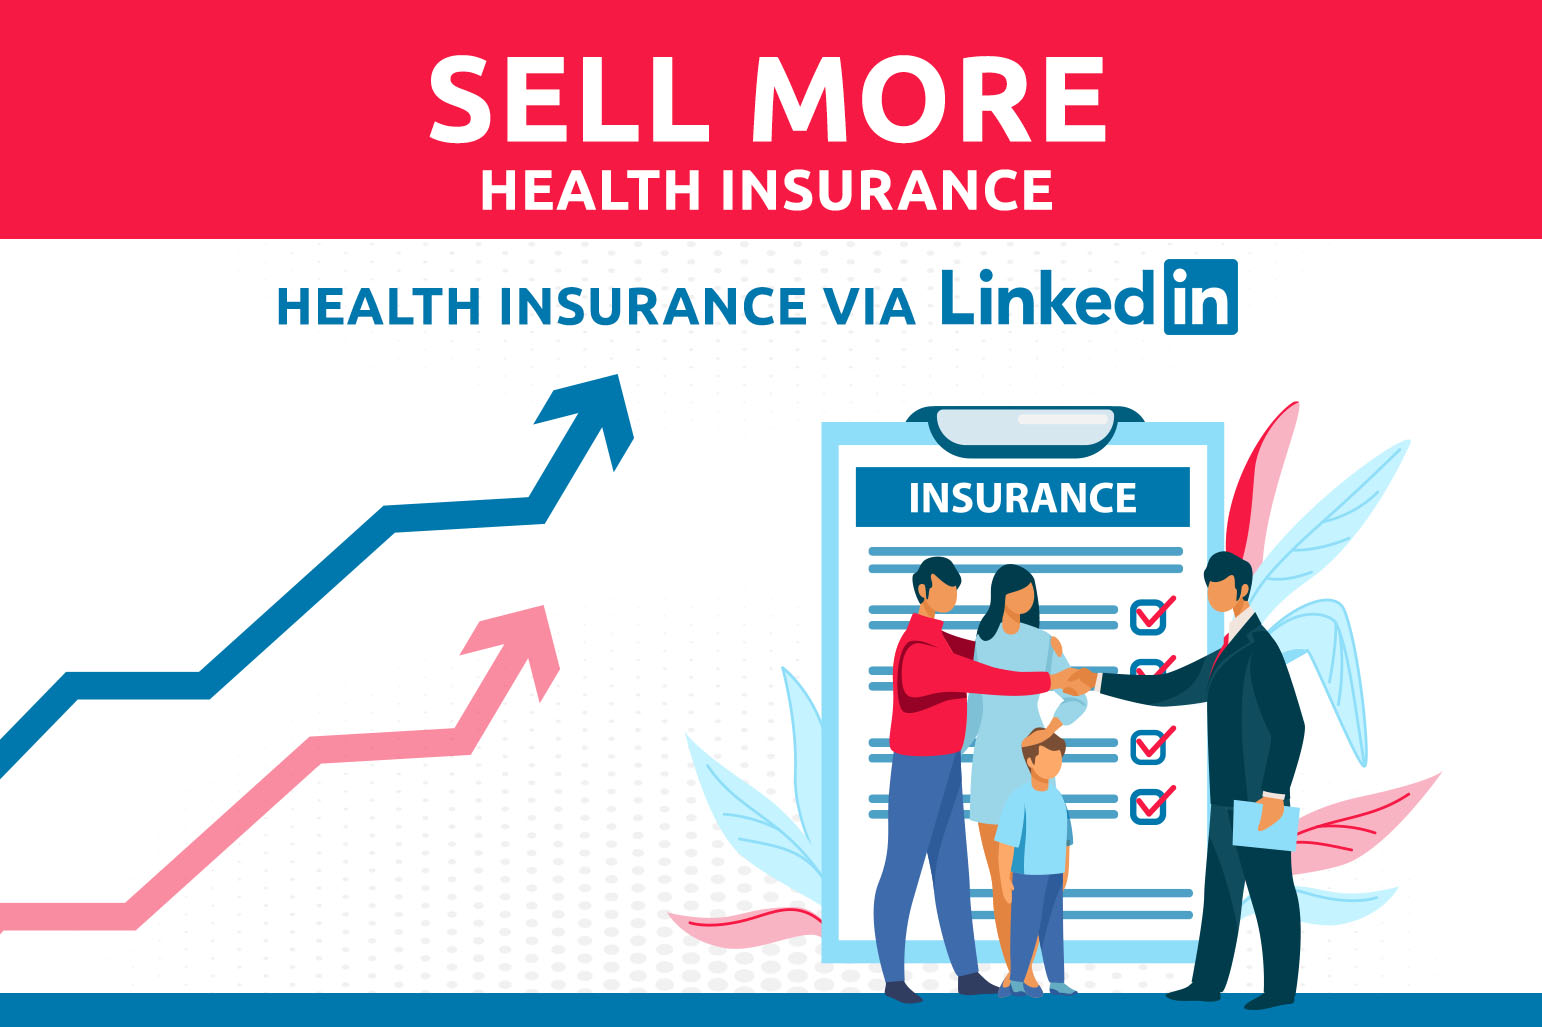 How To Sell More Health Insurance Via LinkedIn